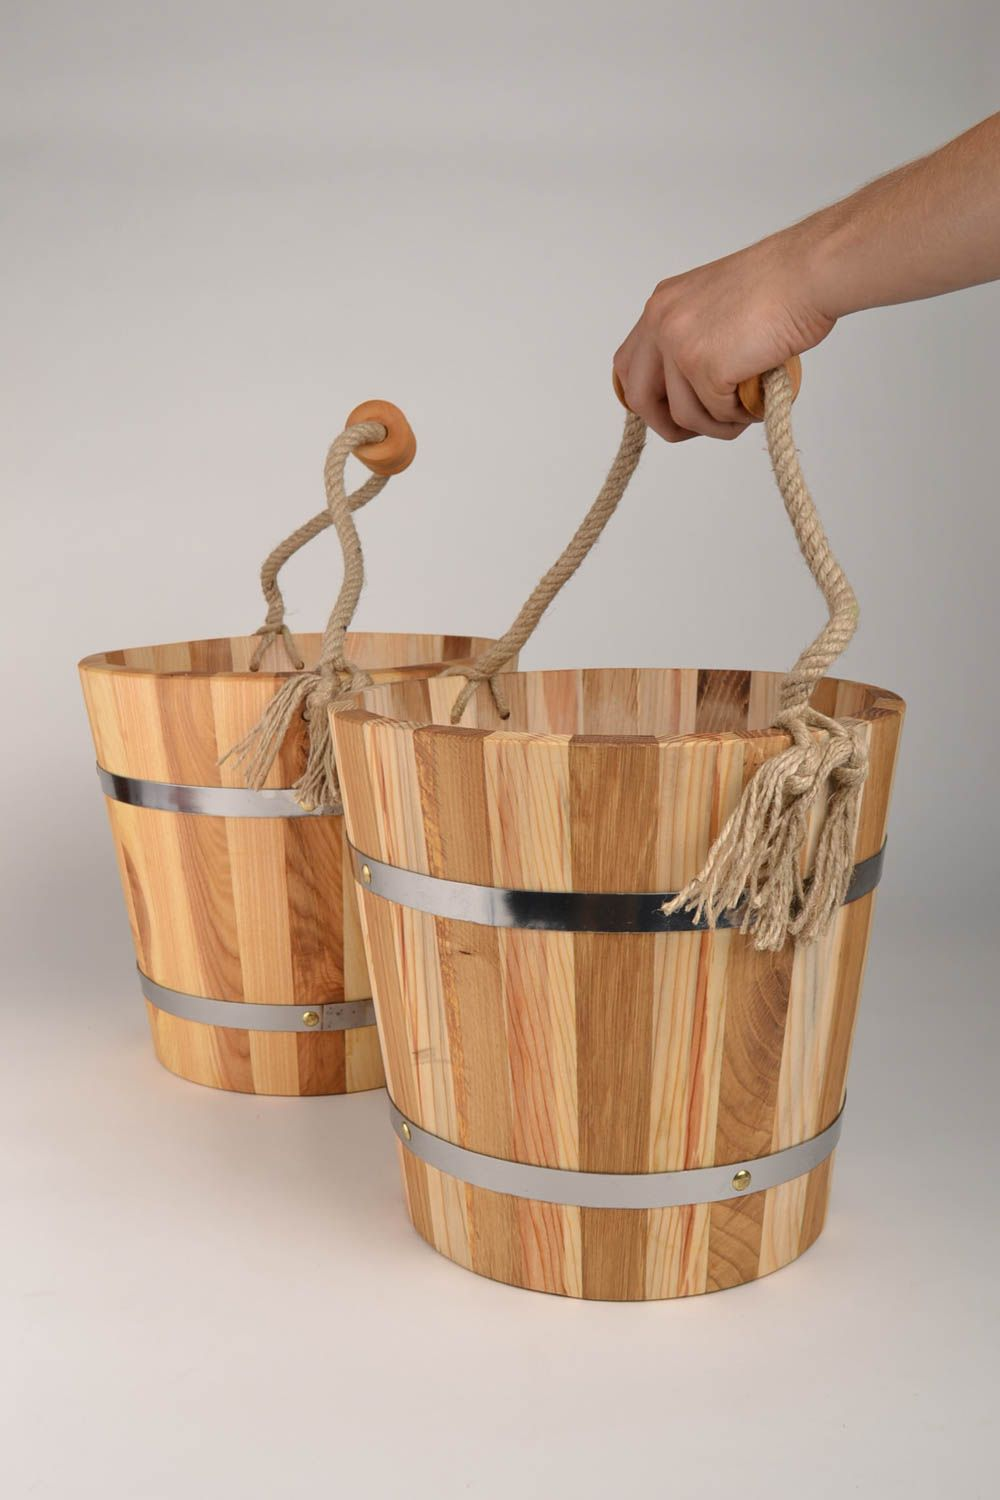 Handmade wooden bucket for sauna bath accessories sauna bucket present for men photo 5